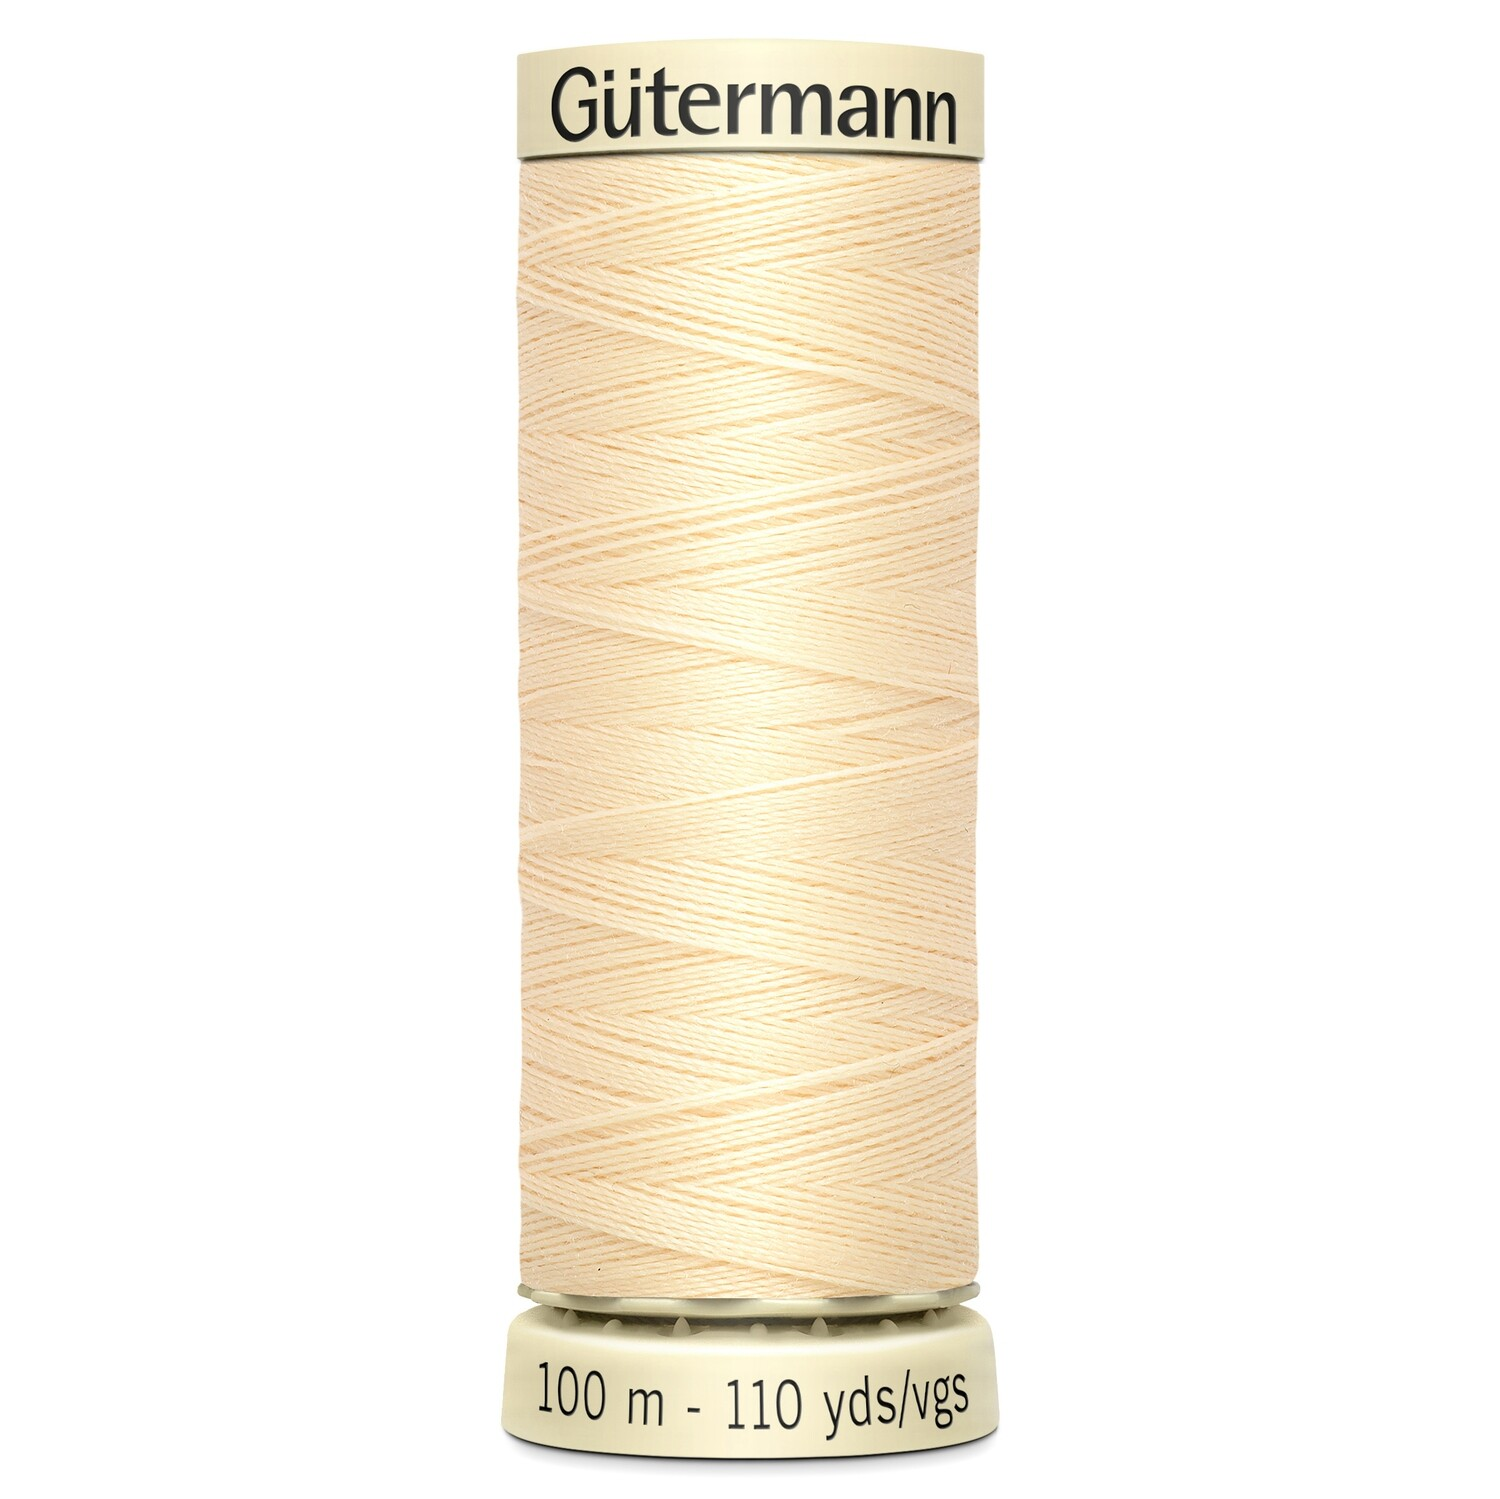 Gutermann Sew-All thread 610